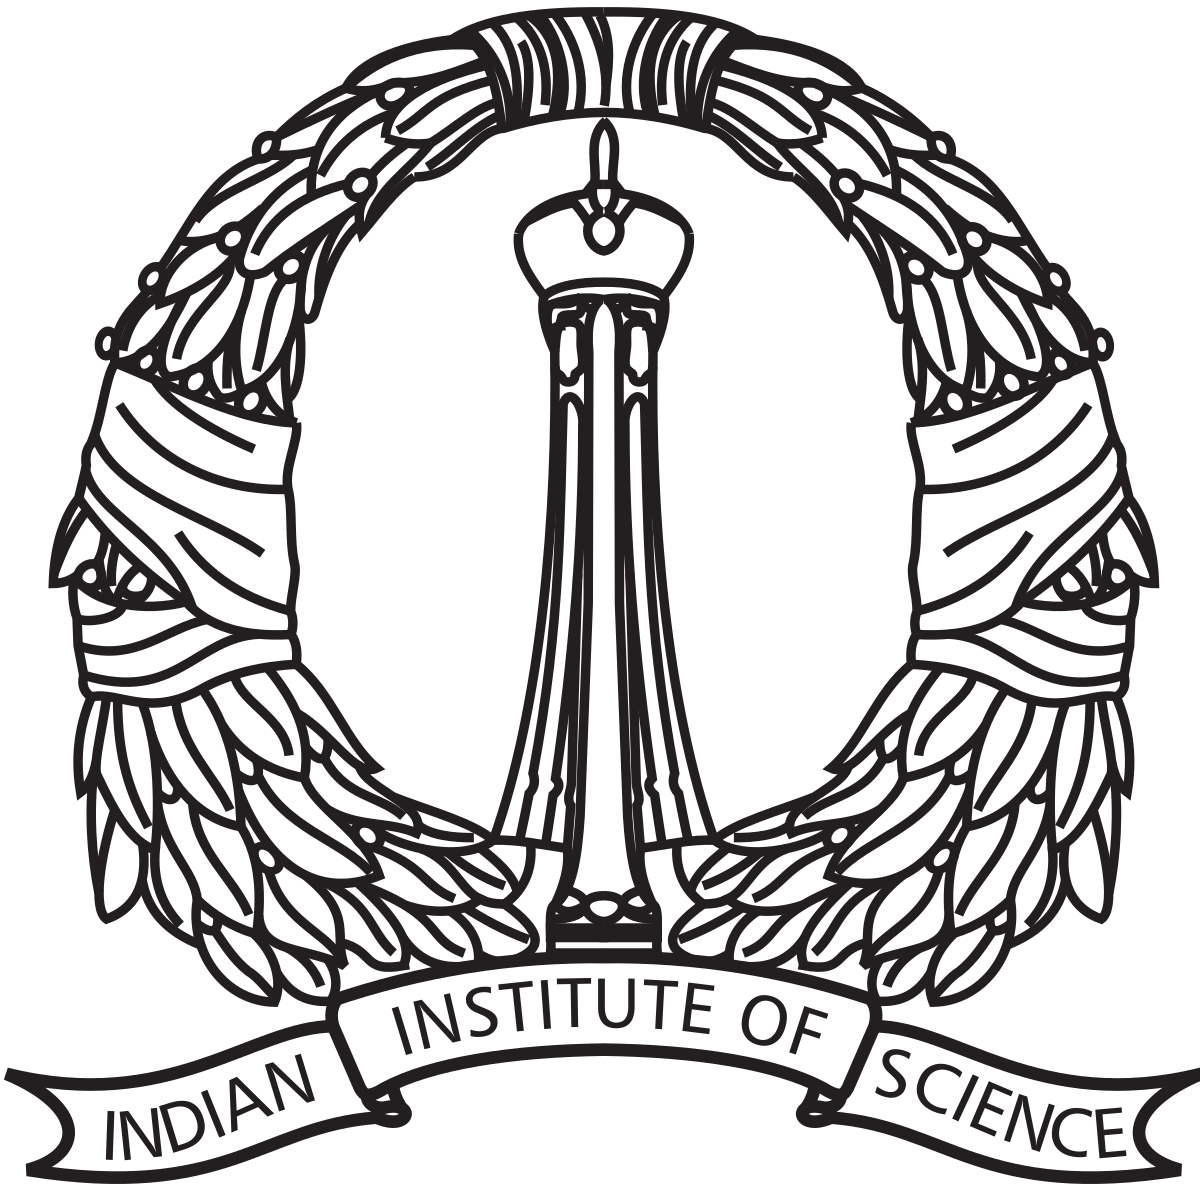 CfP: Conference on Innovations in Sustainable Energy and Technology at IISc Bangalore [Apr 16-17]: Submit by Feb 29